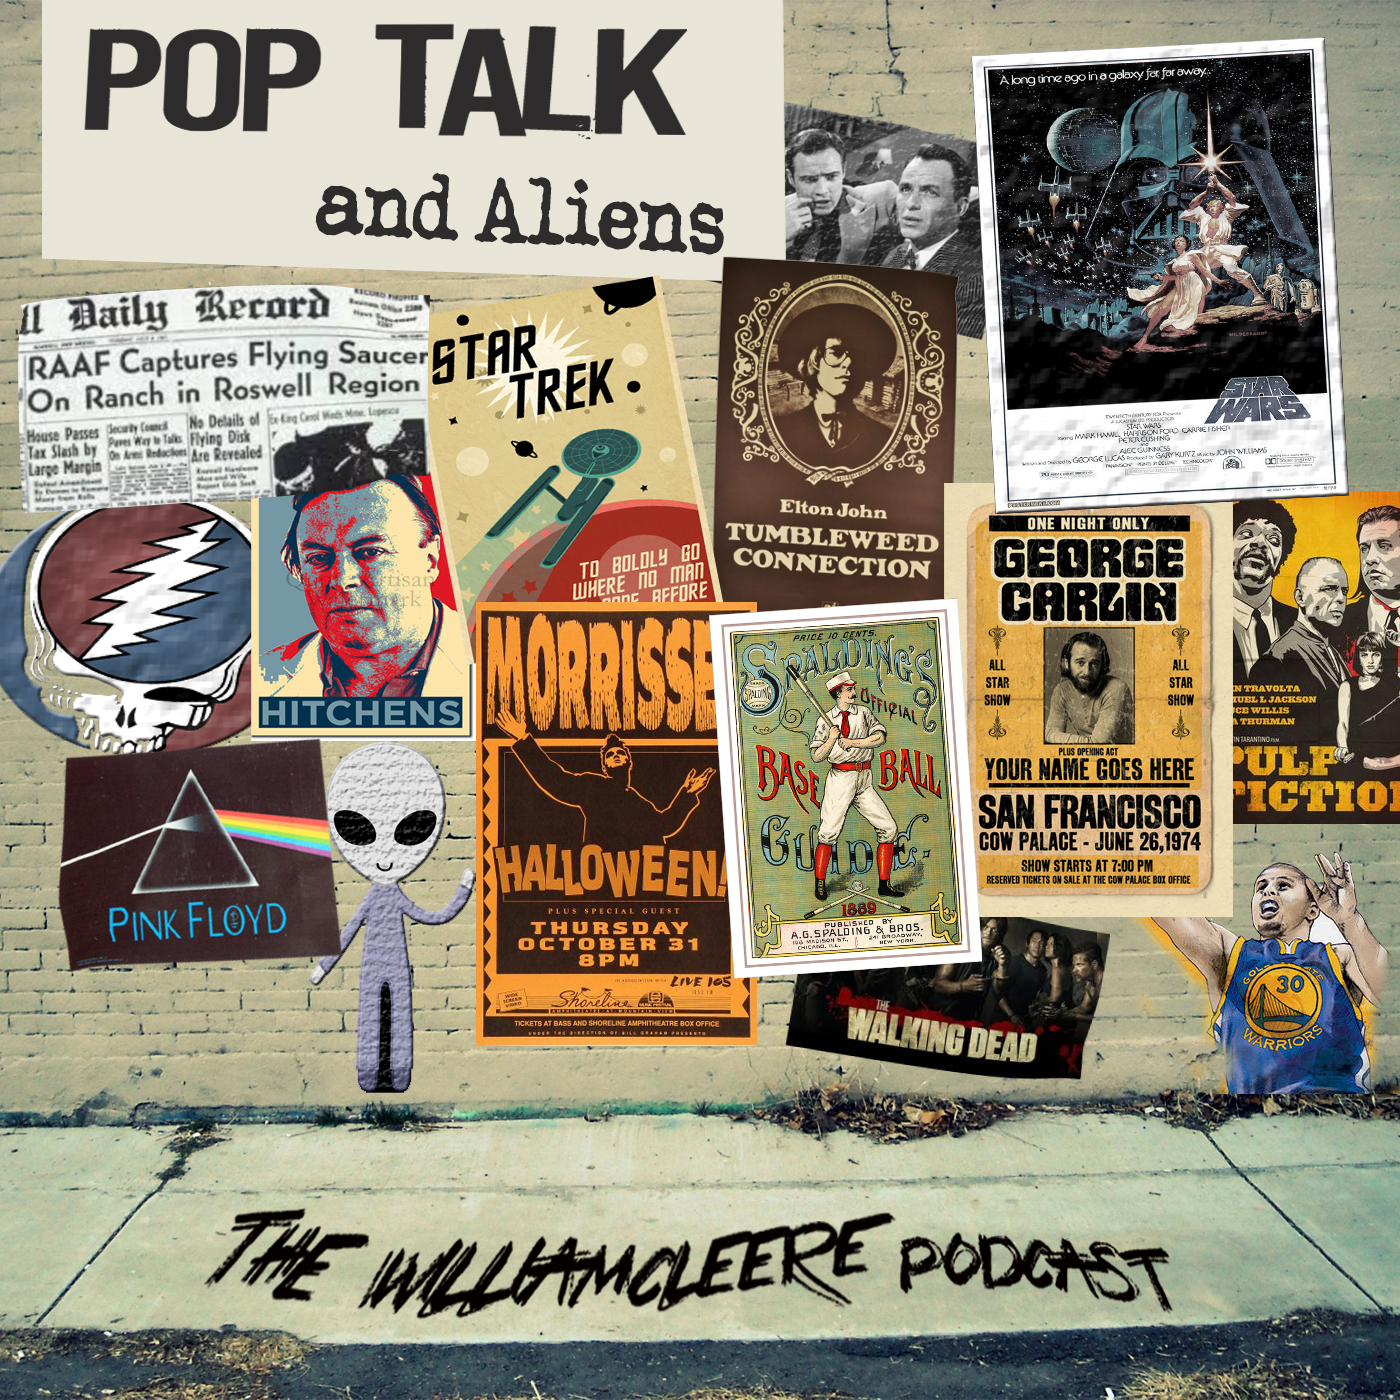 Pop Talk and Aliens - The William Cleere Podcast